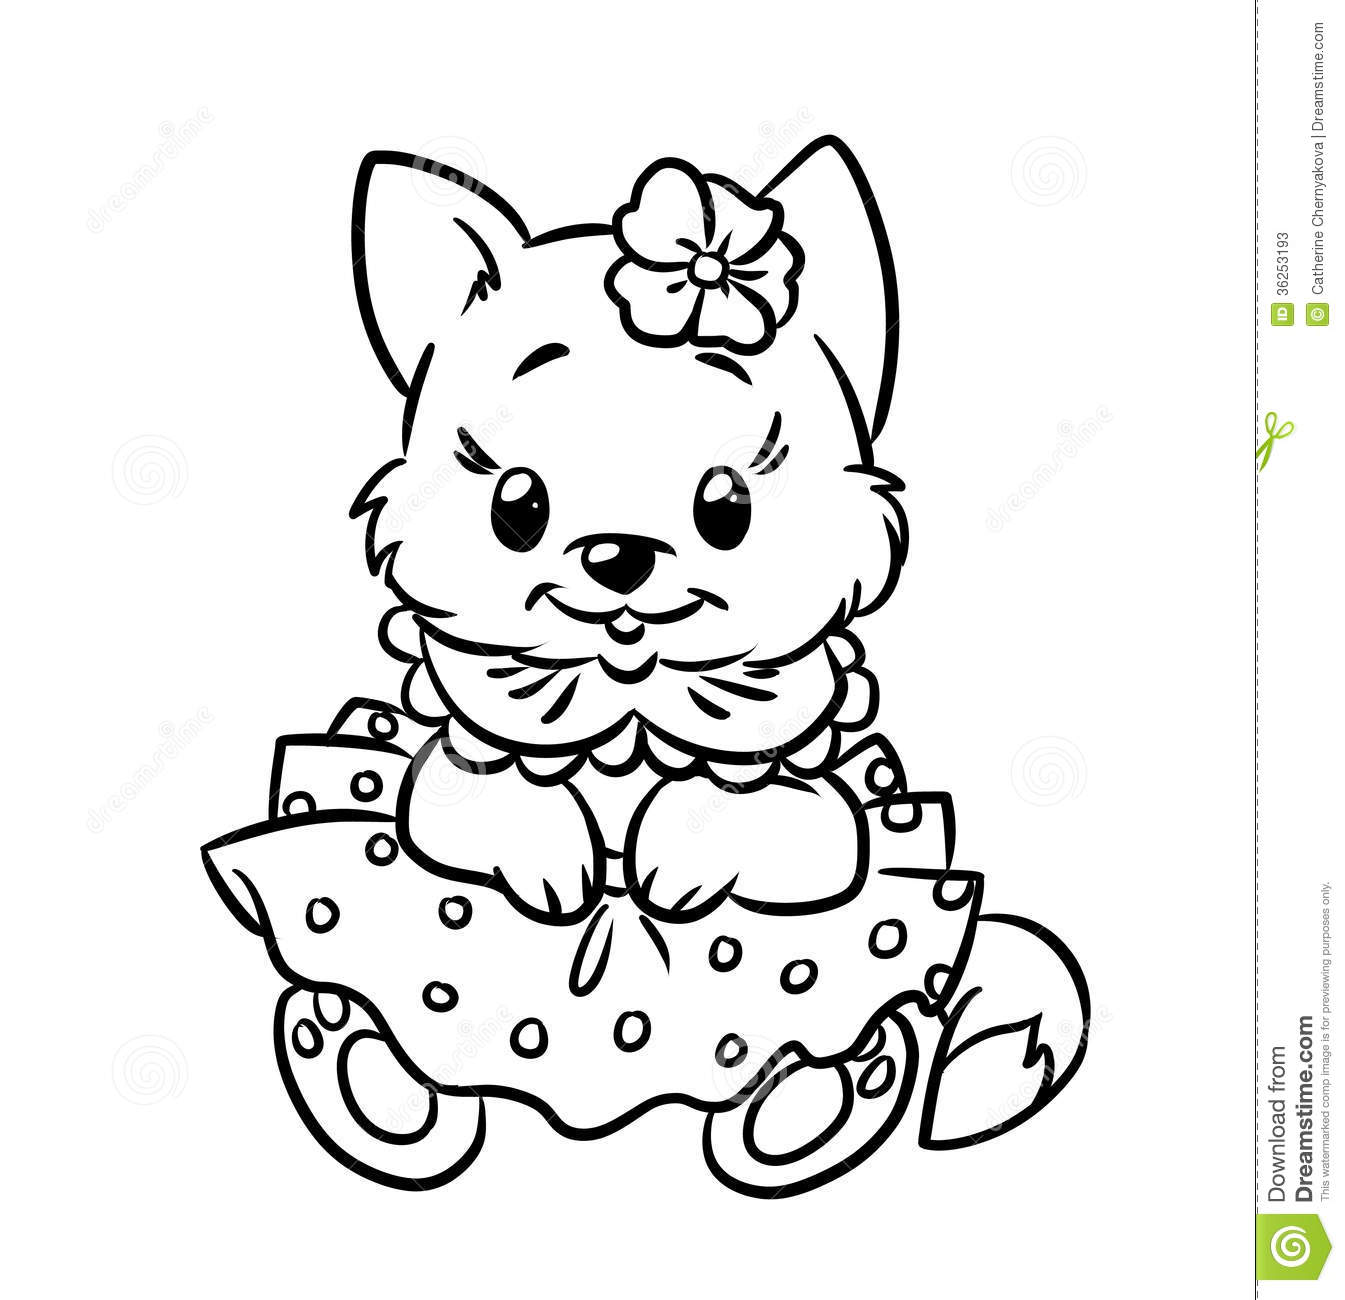 Baby Kitten Coloring Pages Stock Photos